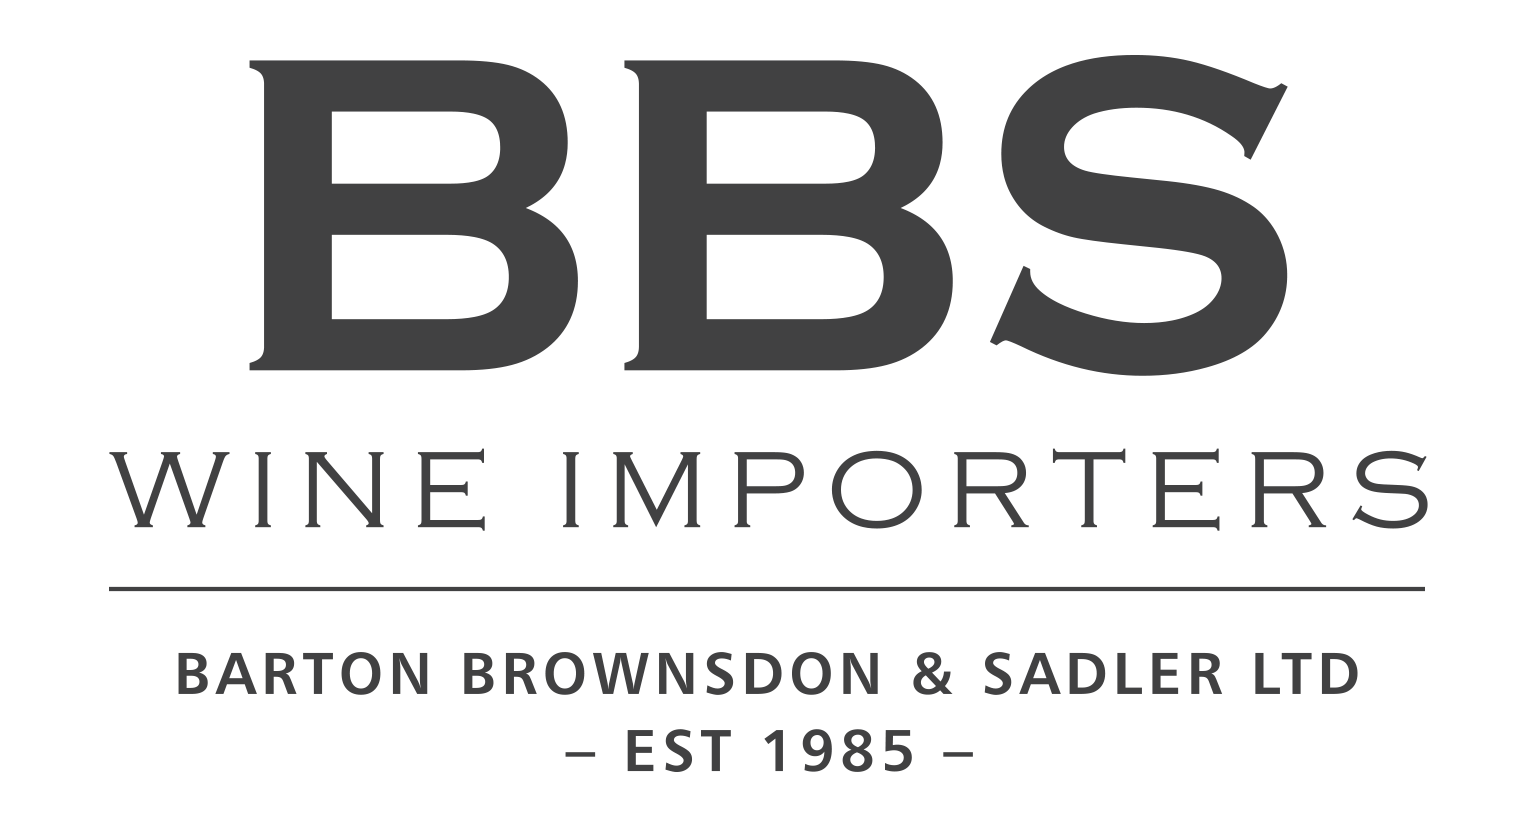 Barton Brownsdon & Sadler Ltd